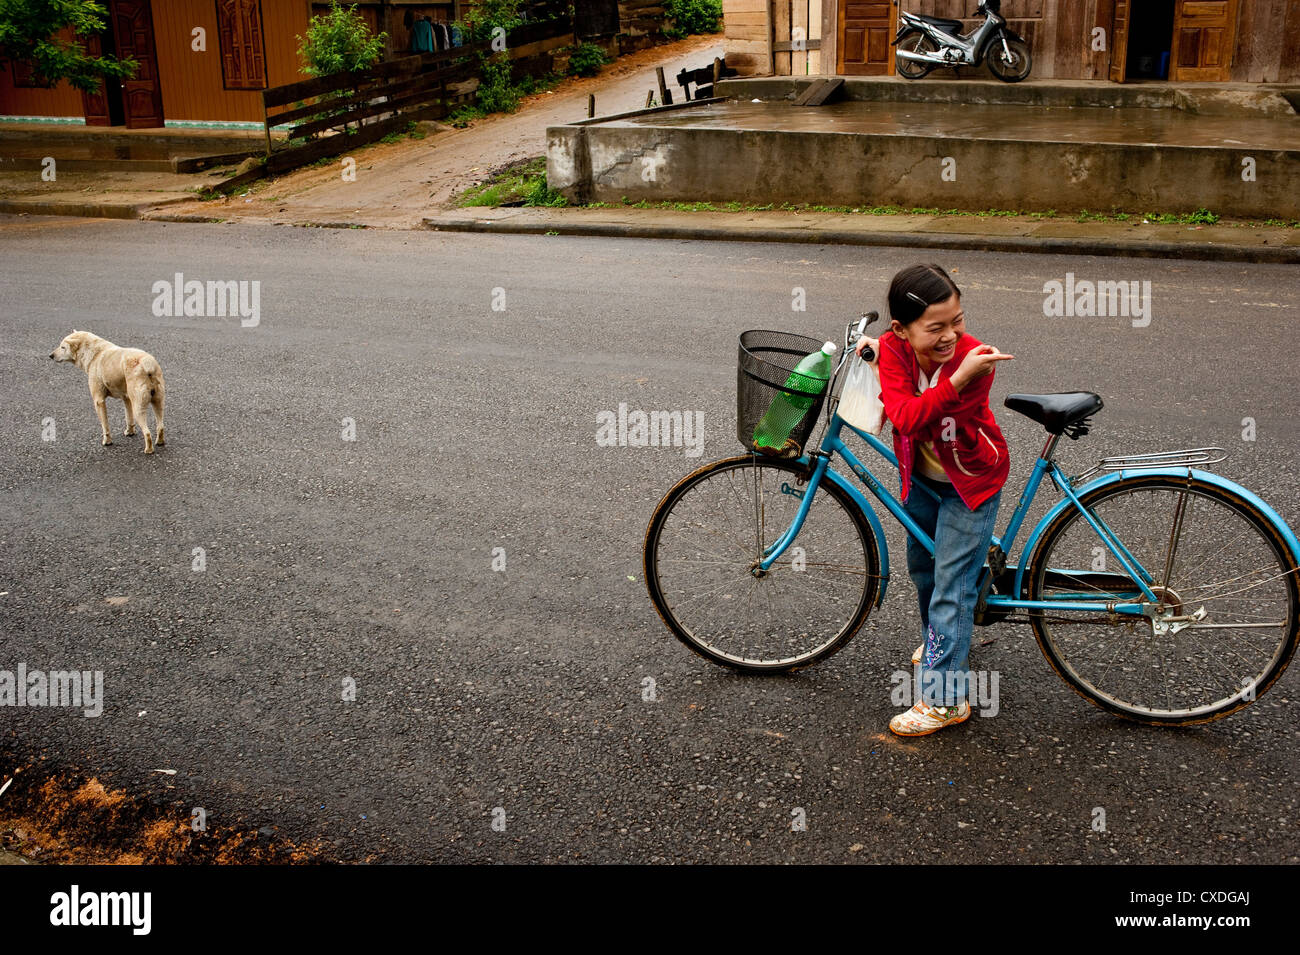 A young girl on a bicycle with a dog on the road North-Vietnam - Stock Image